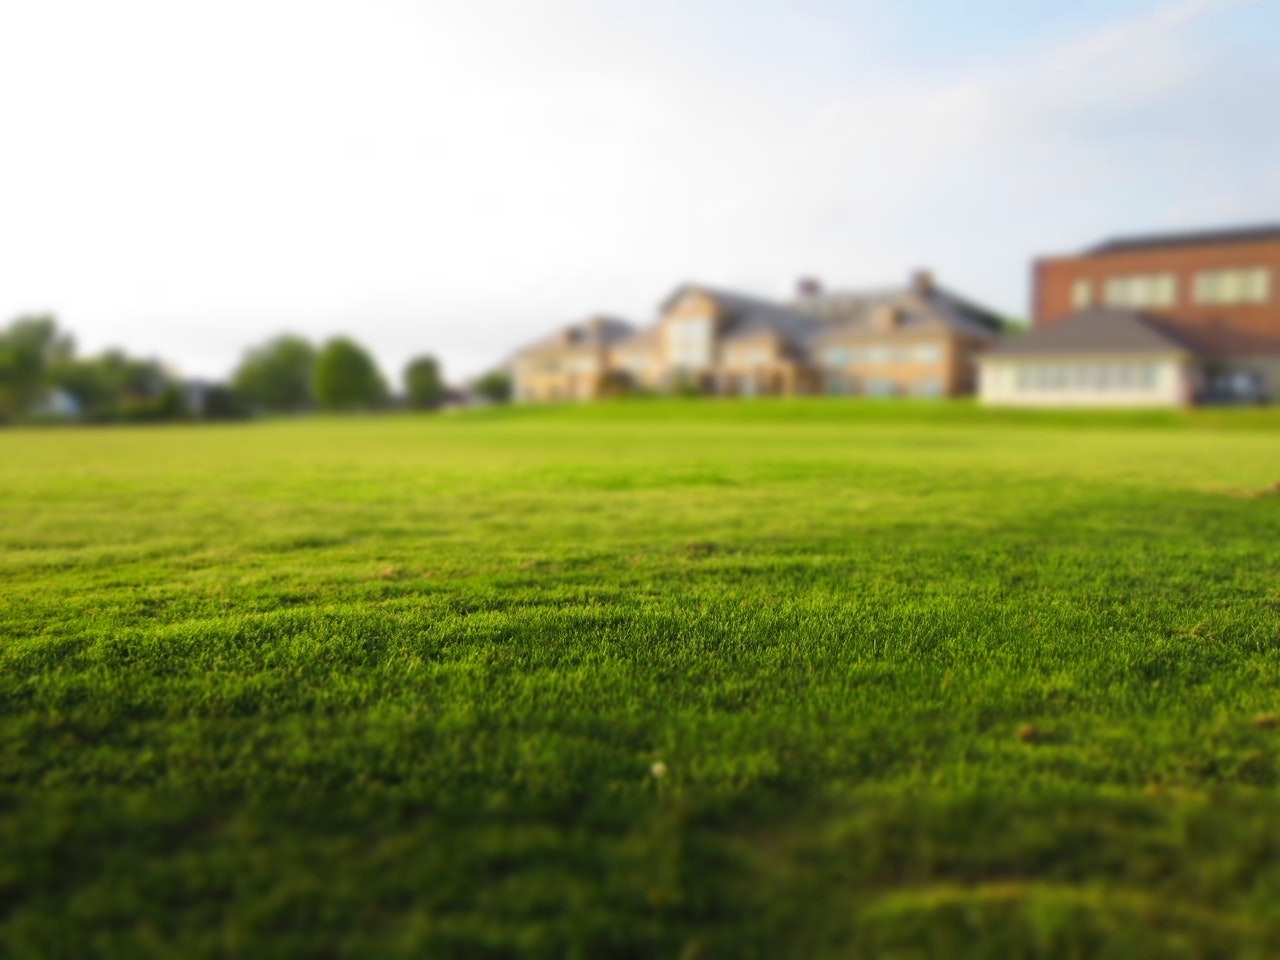 Denver Landscape Design Company Tells Homeowners When to Aerate Their Lawns